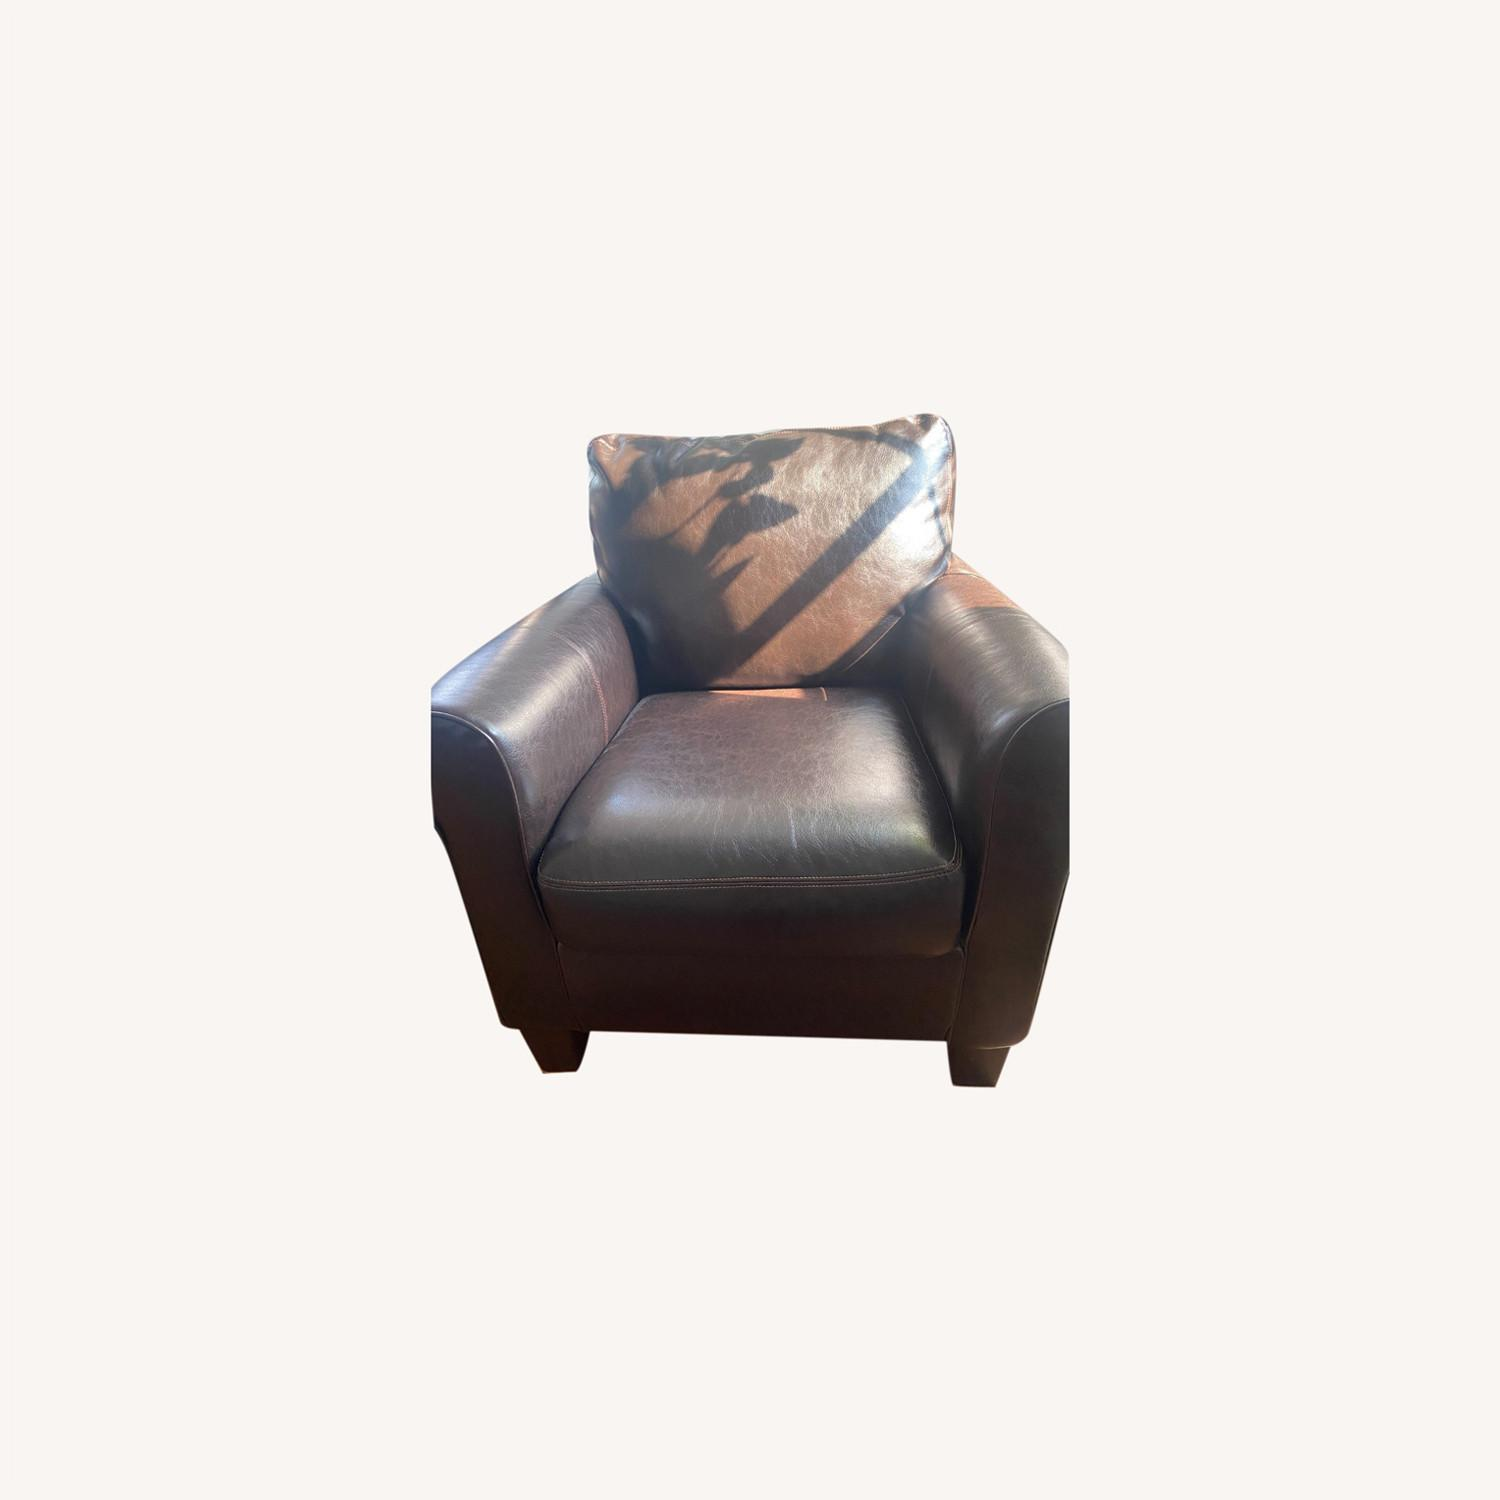 Ashley Furniture 2 Dark Brown Leather Arm Chairs - image-0